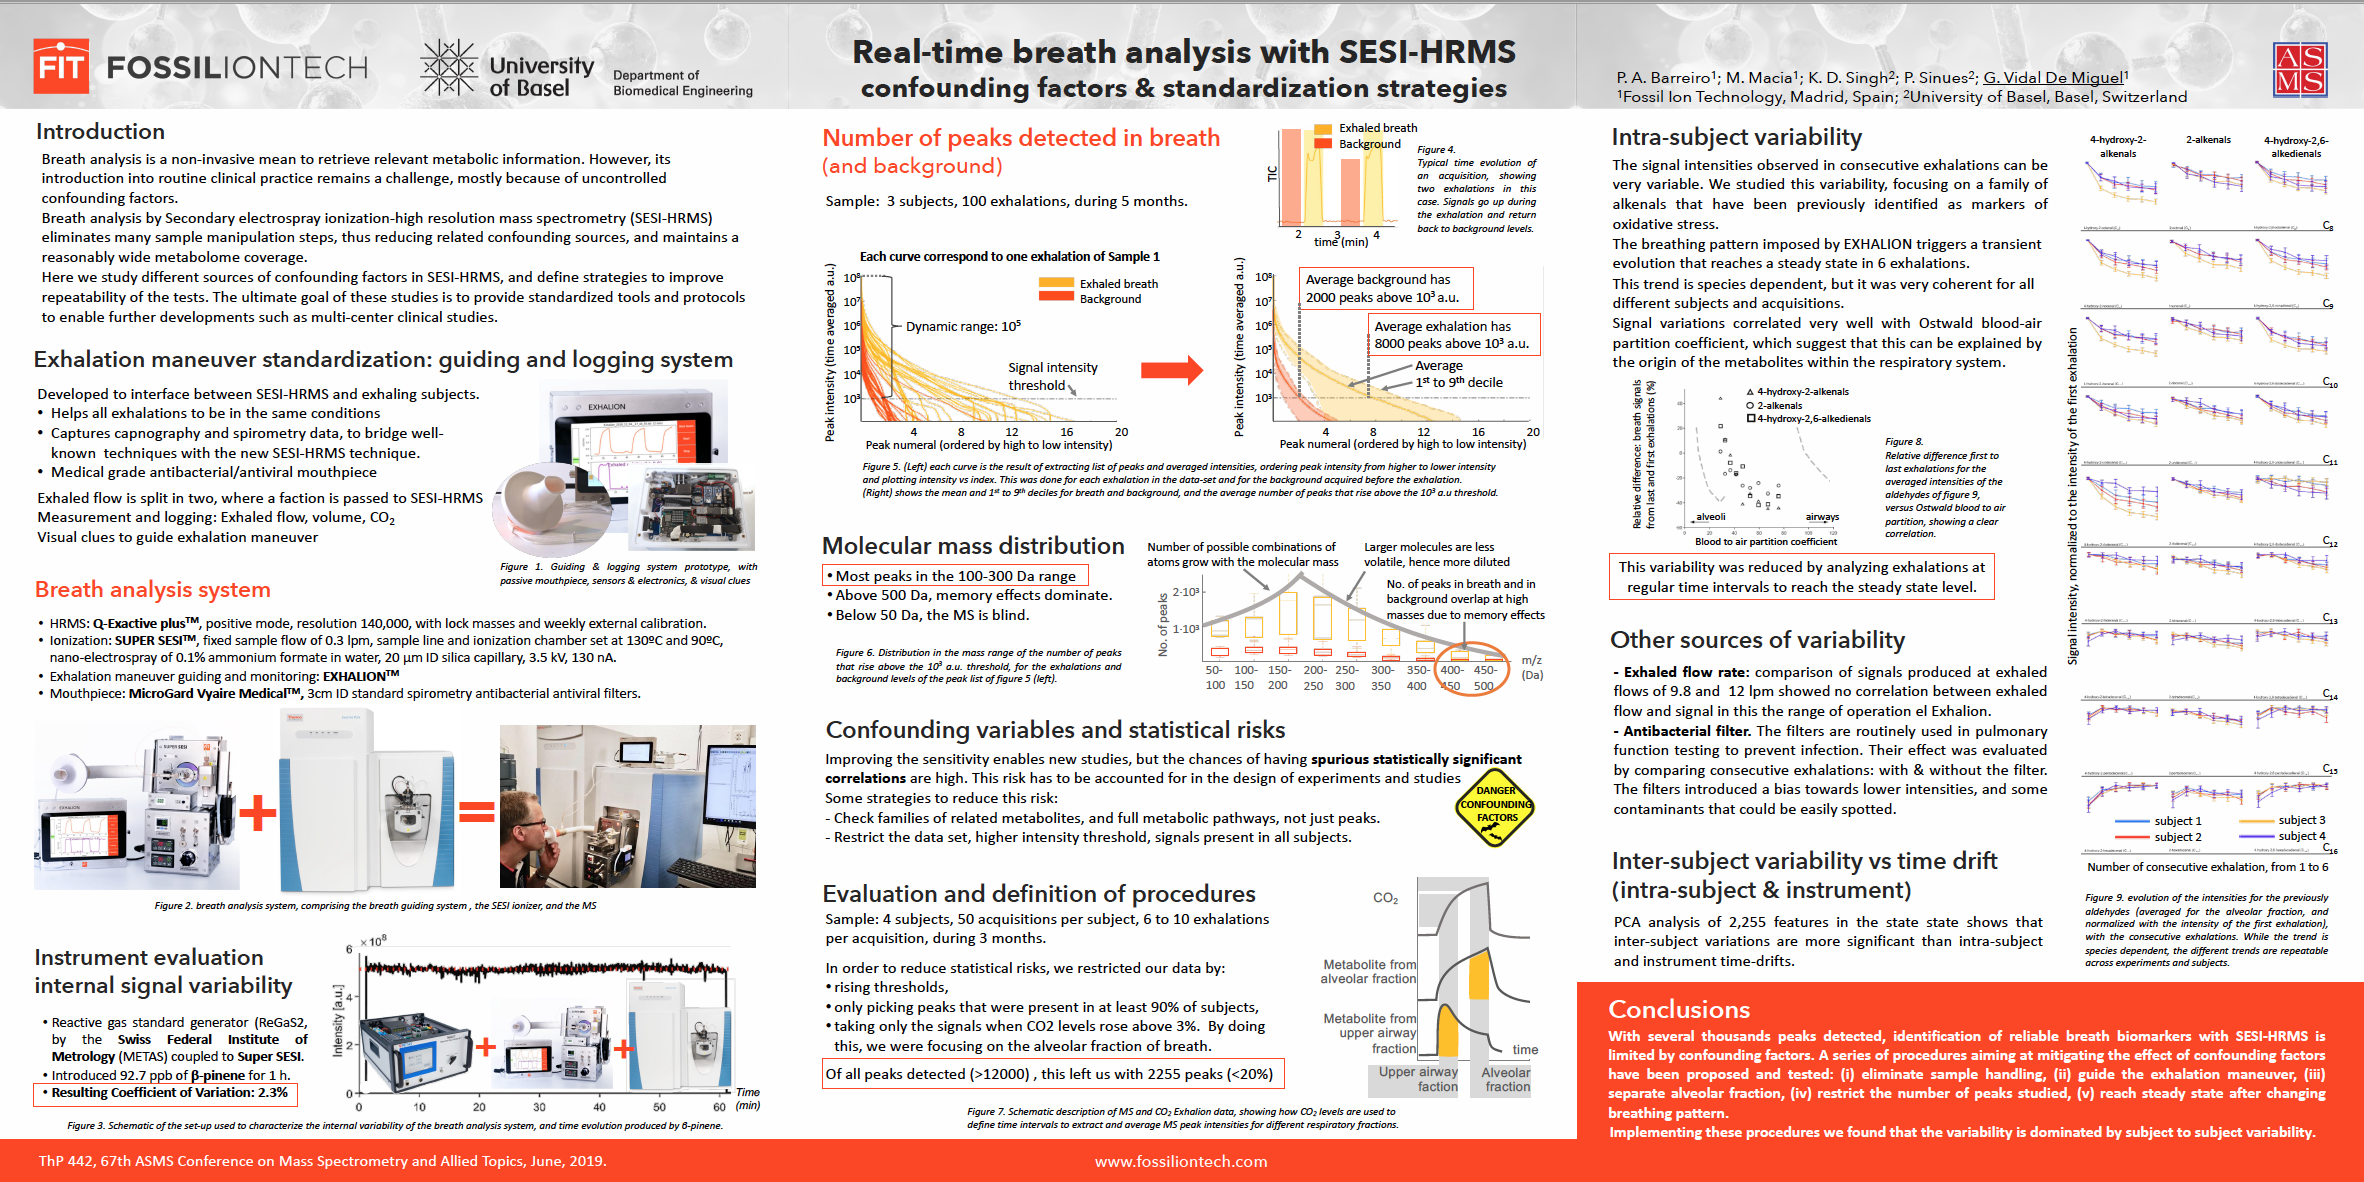 FIT scientific poster ThP442 - ASMS2019.png